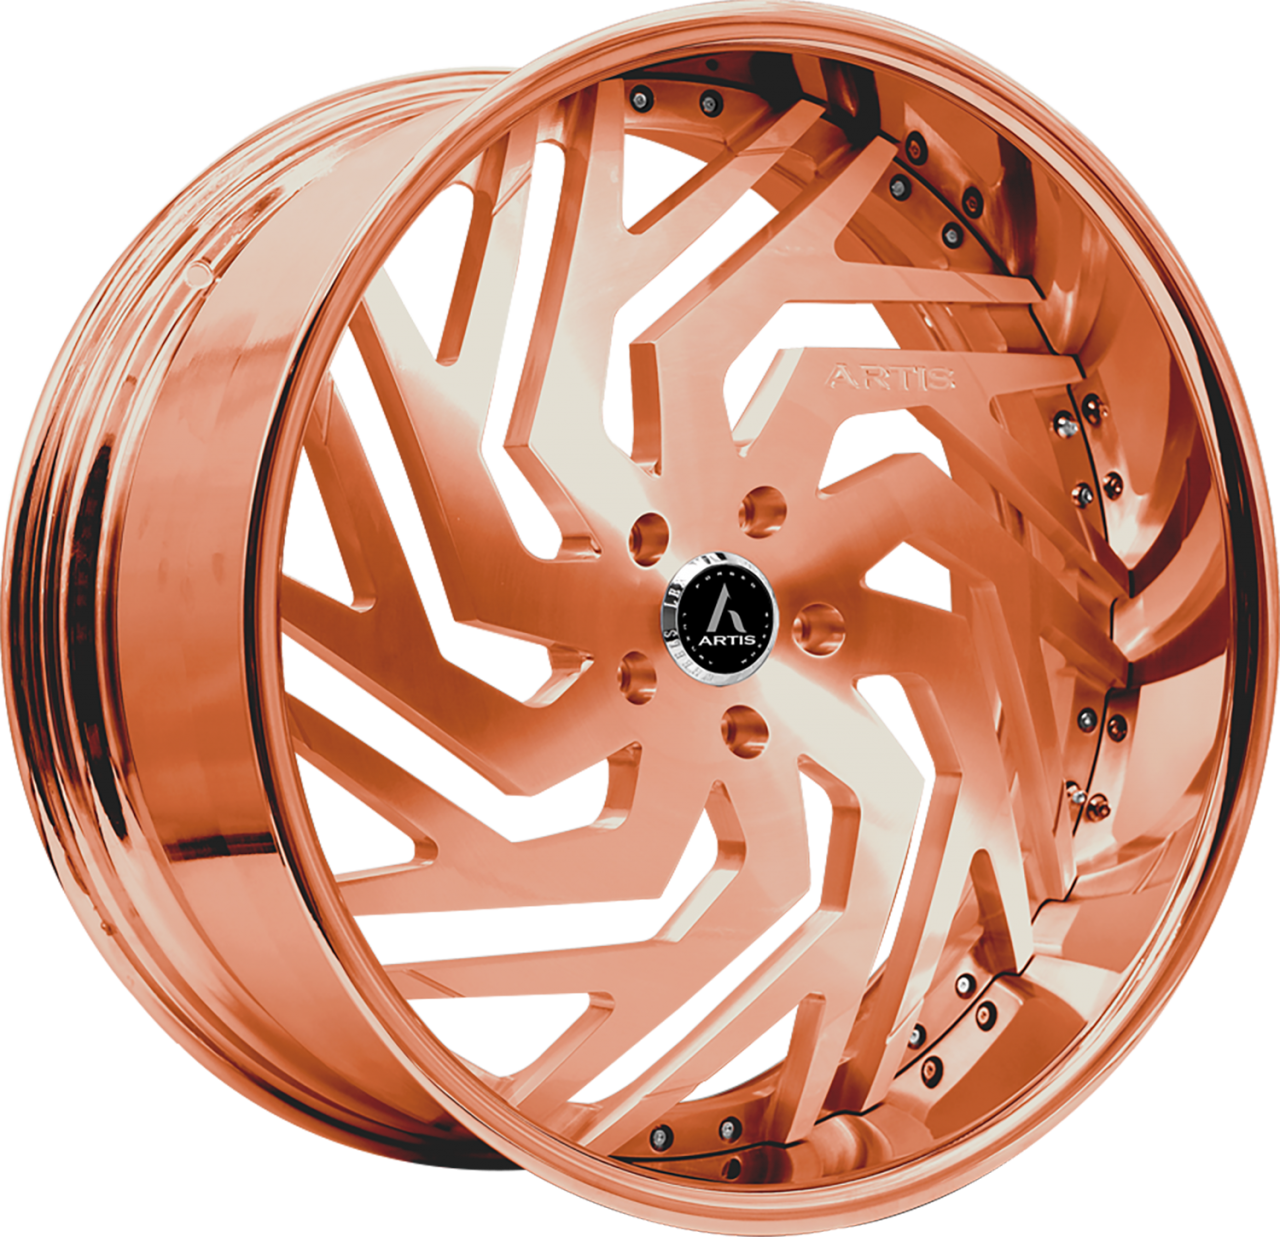 Artis Forged Cicero wheel with Custom Rose Gold finish